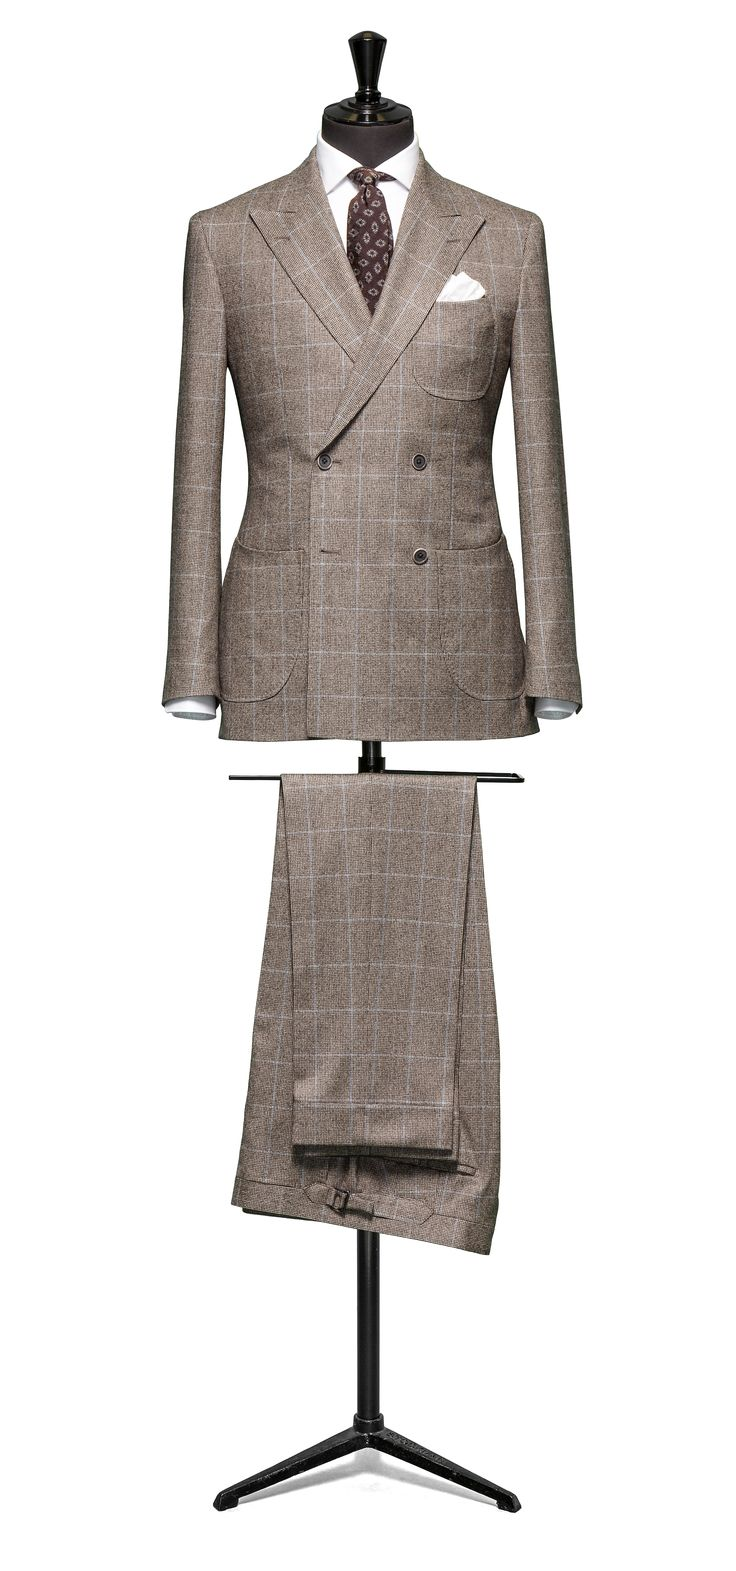 Brown suit Houndstooth blue windowpane S120 http://www.tailormadelondon.com/shop/tailored-suit-fabric-4358-houndstooth-check-brown/